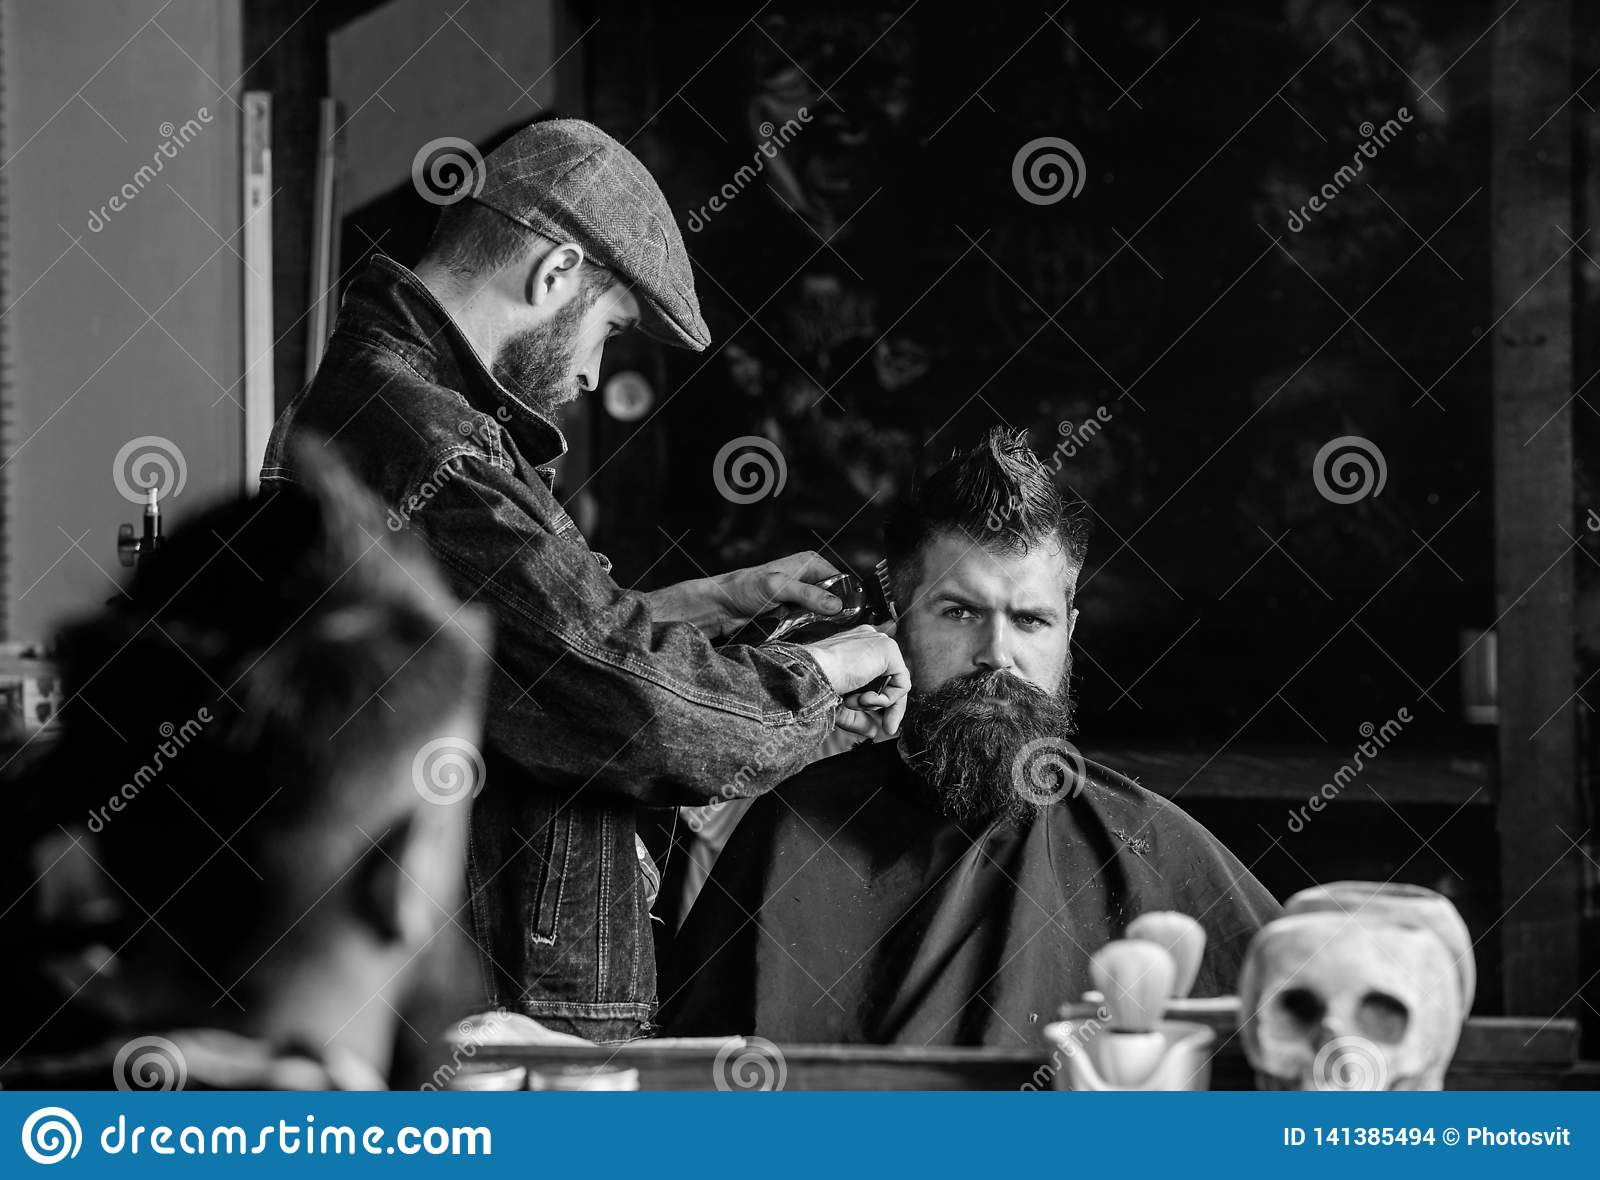 Hipster client getting haircut. Haircut concept. Barber styling hair of brutal bearded client with clipper. Barber with